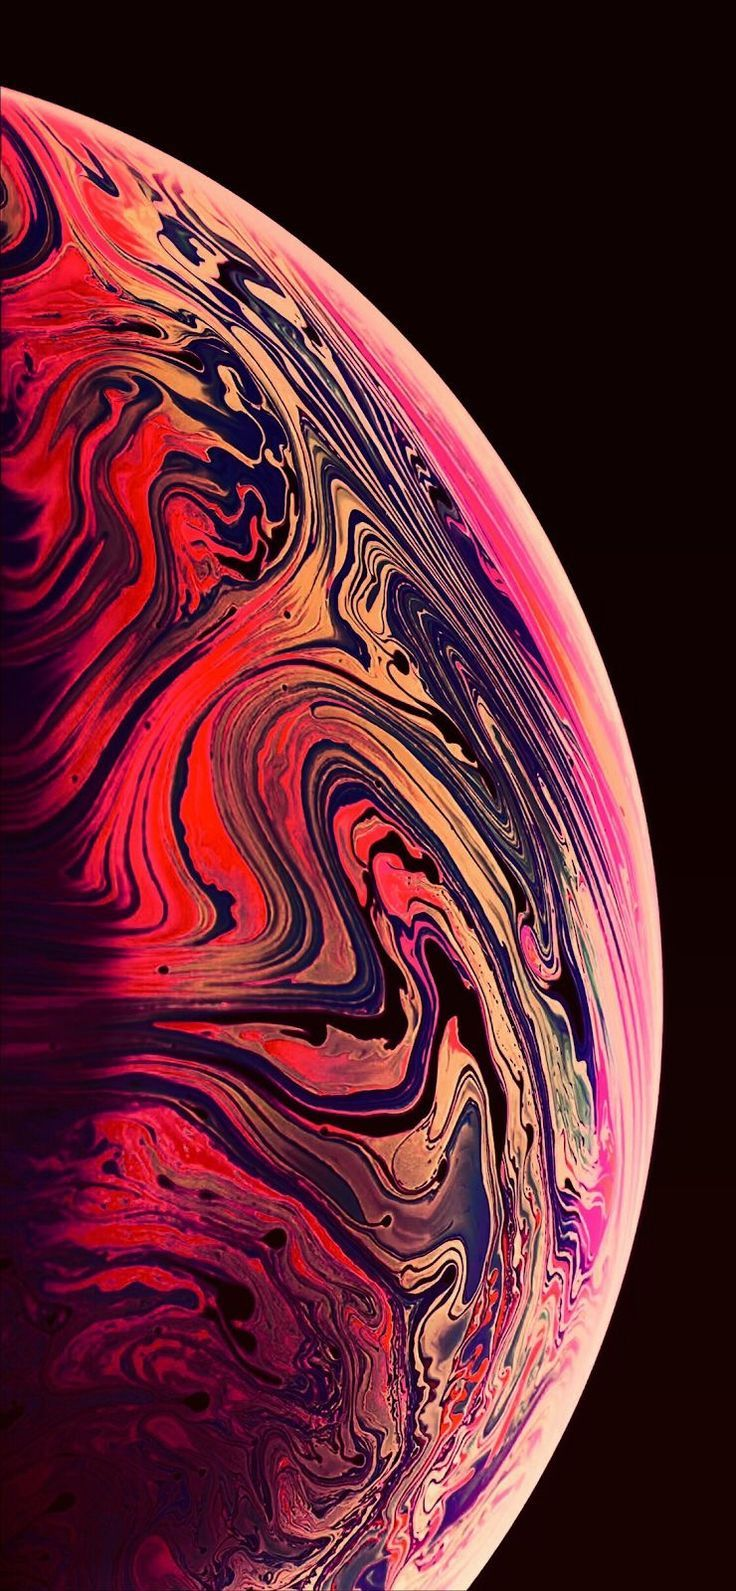 Fondos De Iphone Xs Mas Abstract Hd Wallpapers Abstract Abstractwallpaperiphone Fondos Ip Papeis De Parede Papel De Parede Samsung Papel De Parede Apple